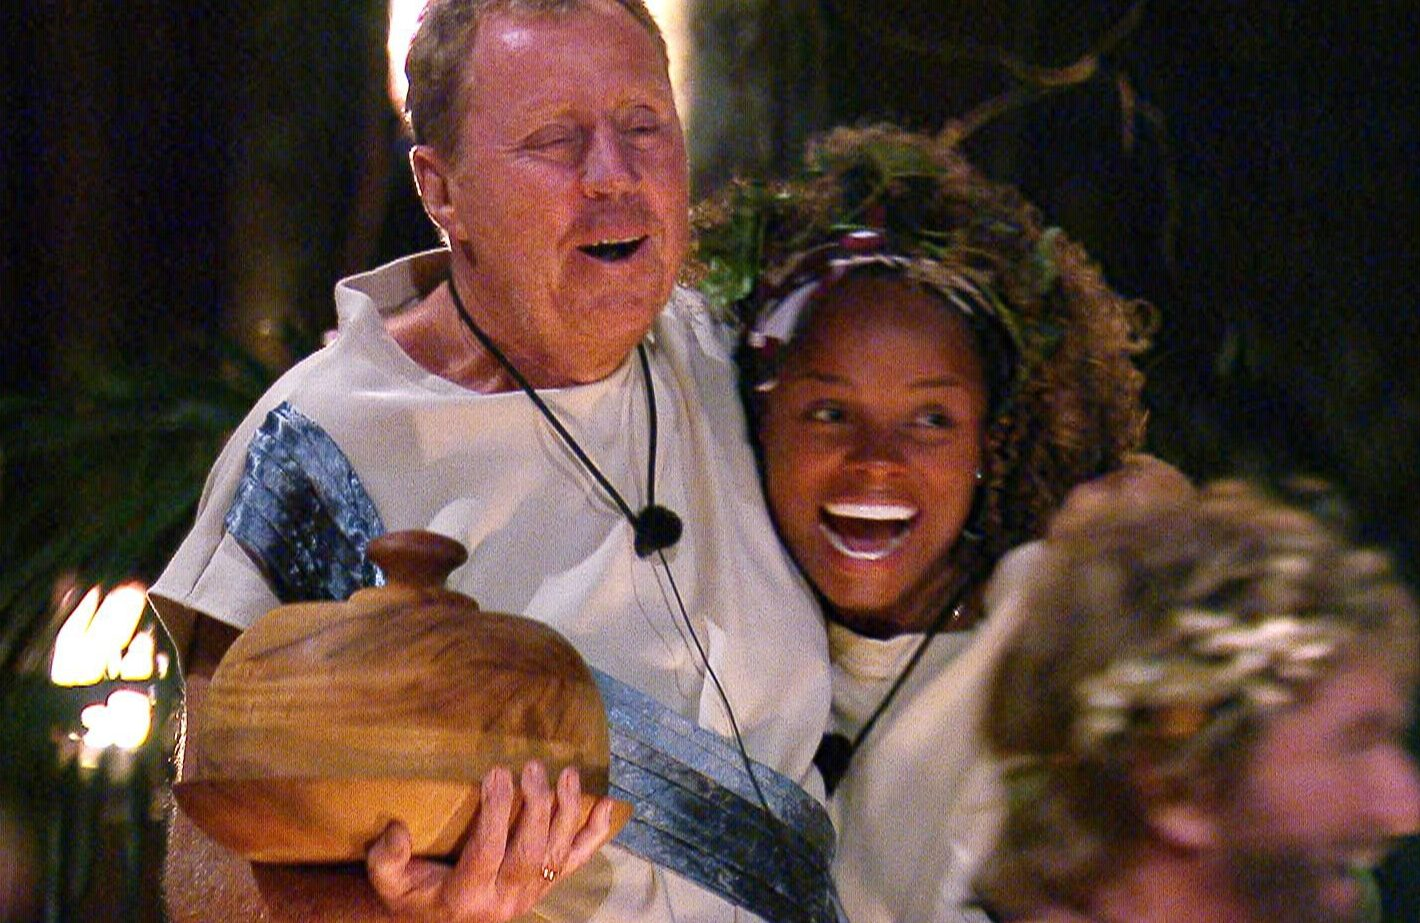 STRICT EMBARGO - NOT TO BE USED BEFORE 22:30 GMT, 22 NOV 2018 - EDITORIAL USE ONLY Mandatory Credit: Photo by ITV/REX (9989883kh) Outbackius Shakius - Harry Redknapp and Fleur East 'I'm a Celebrity... Get Me Out of Here!' TV Show, Series 18, Australia - 22 Nov 2018